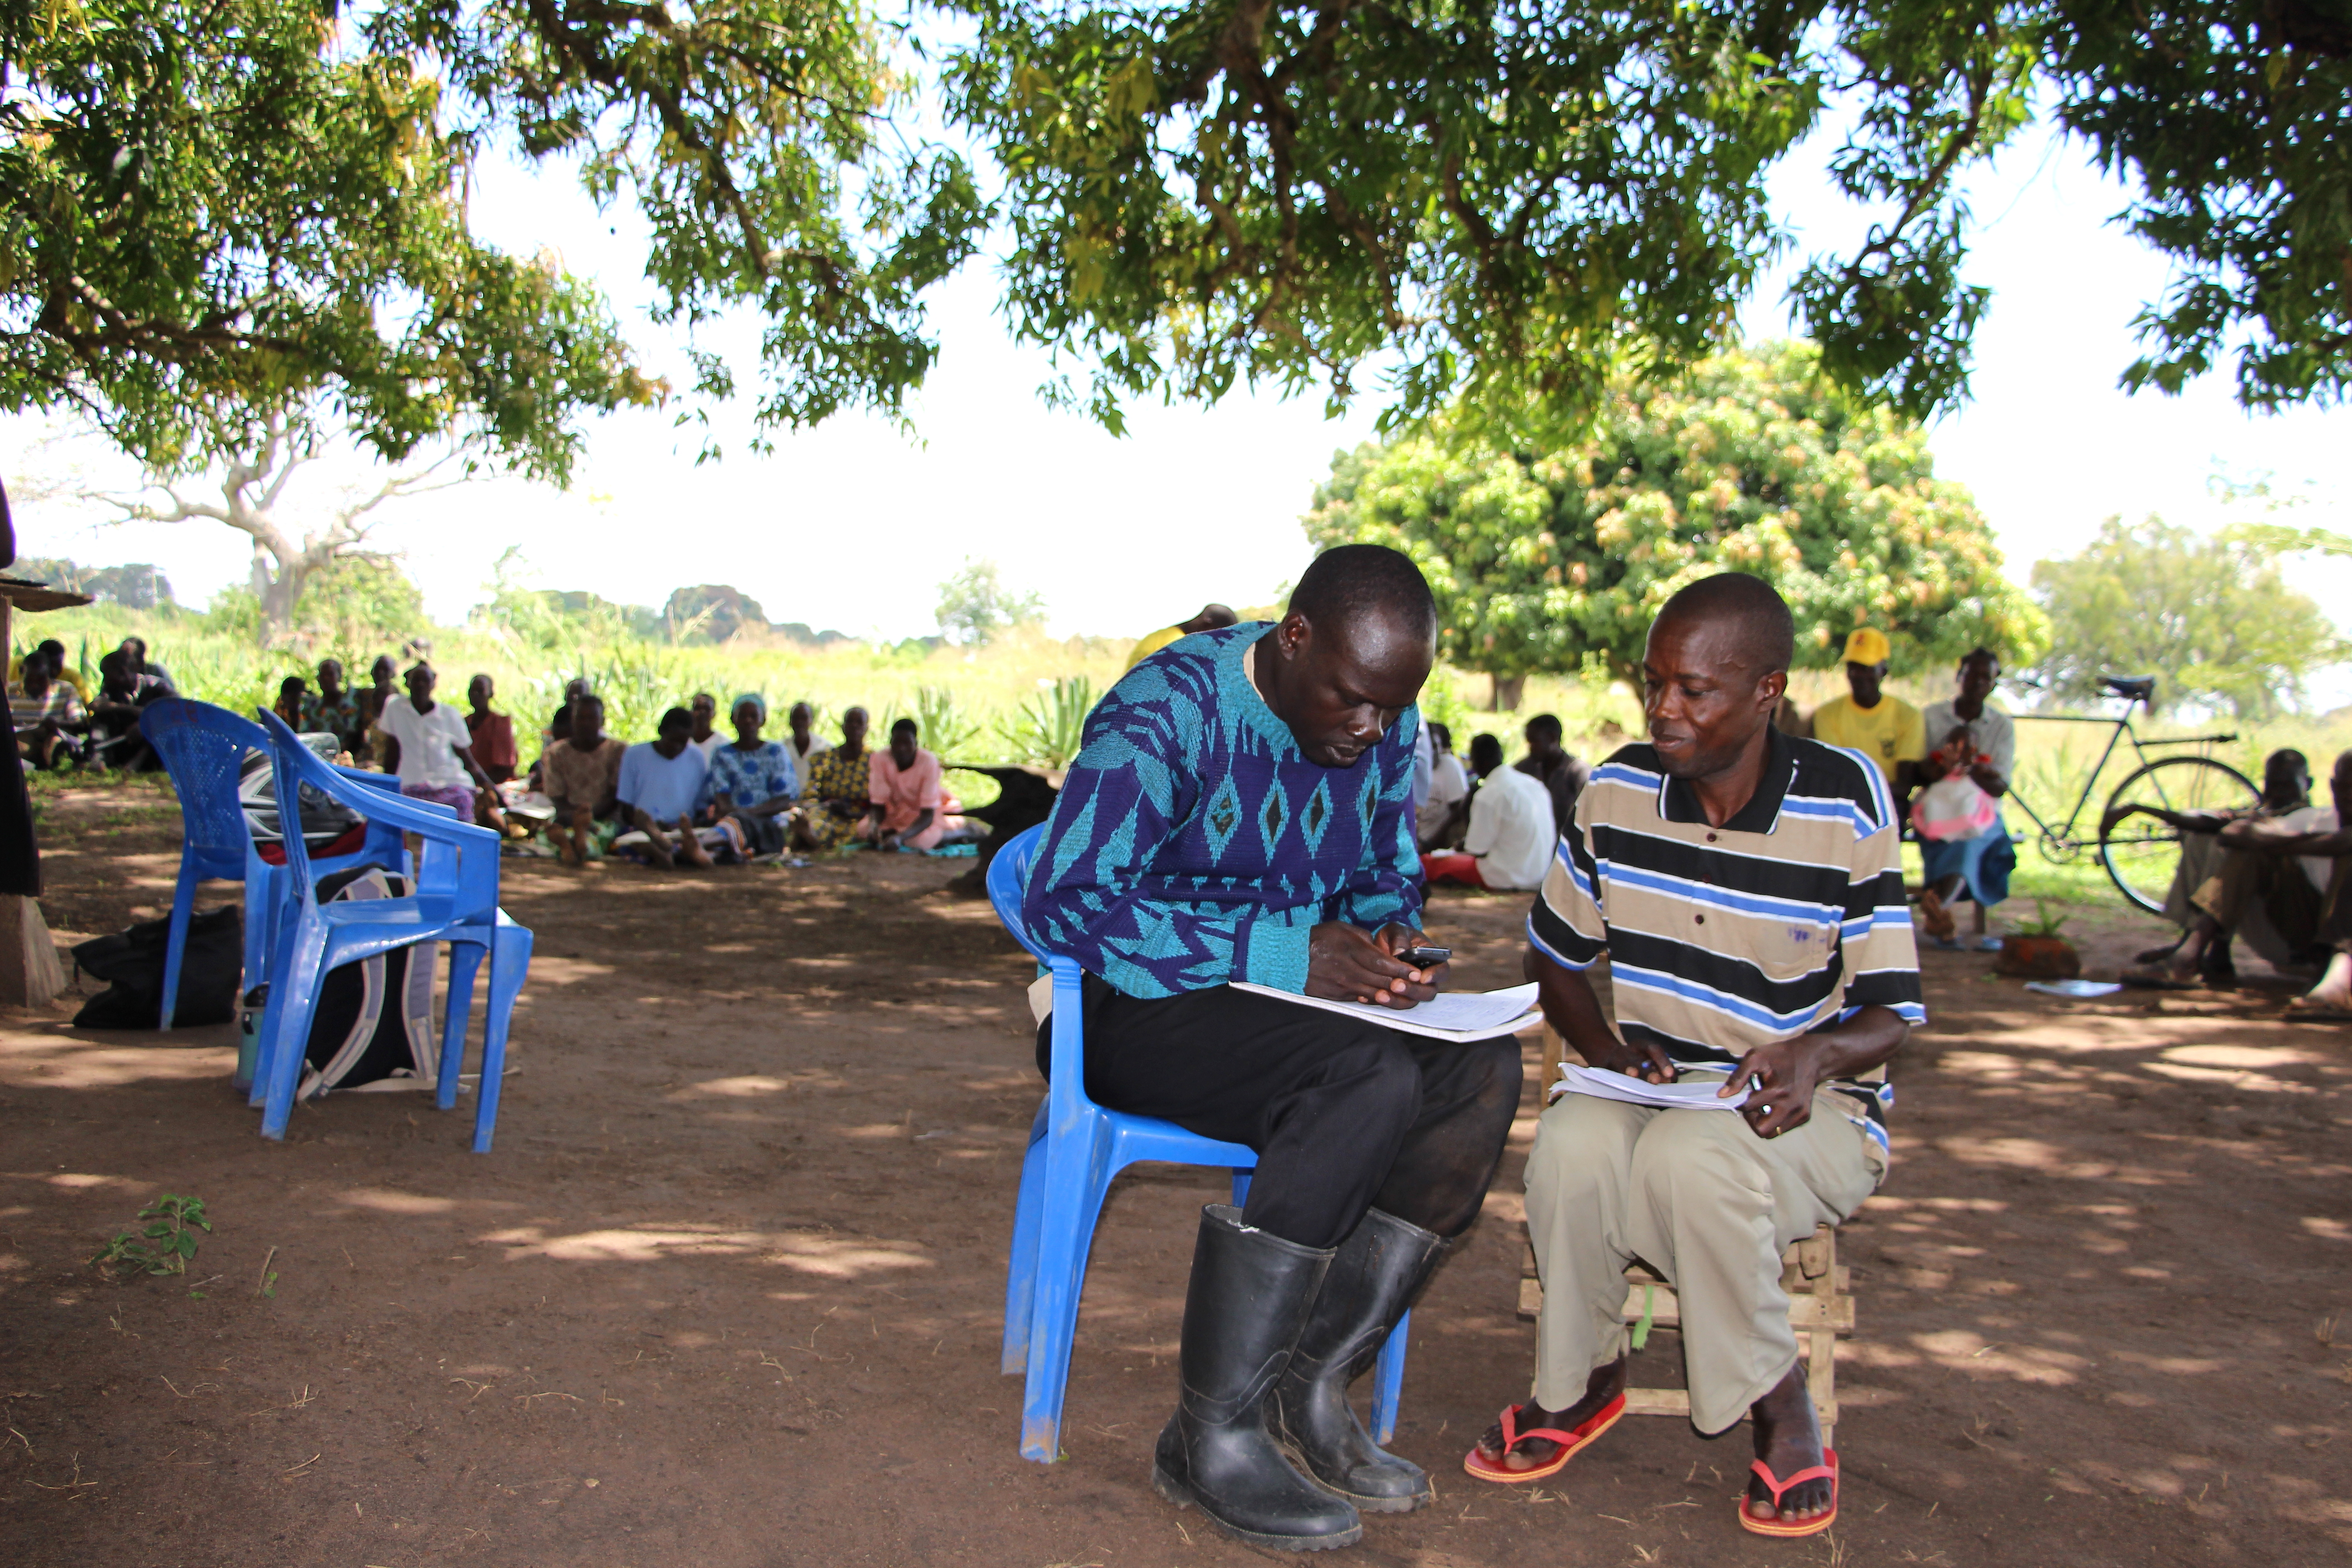 Village Enterprise Field Coordinator Maurice Eriaku works with a Business Owner to complete the Small Business Survey.